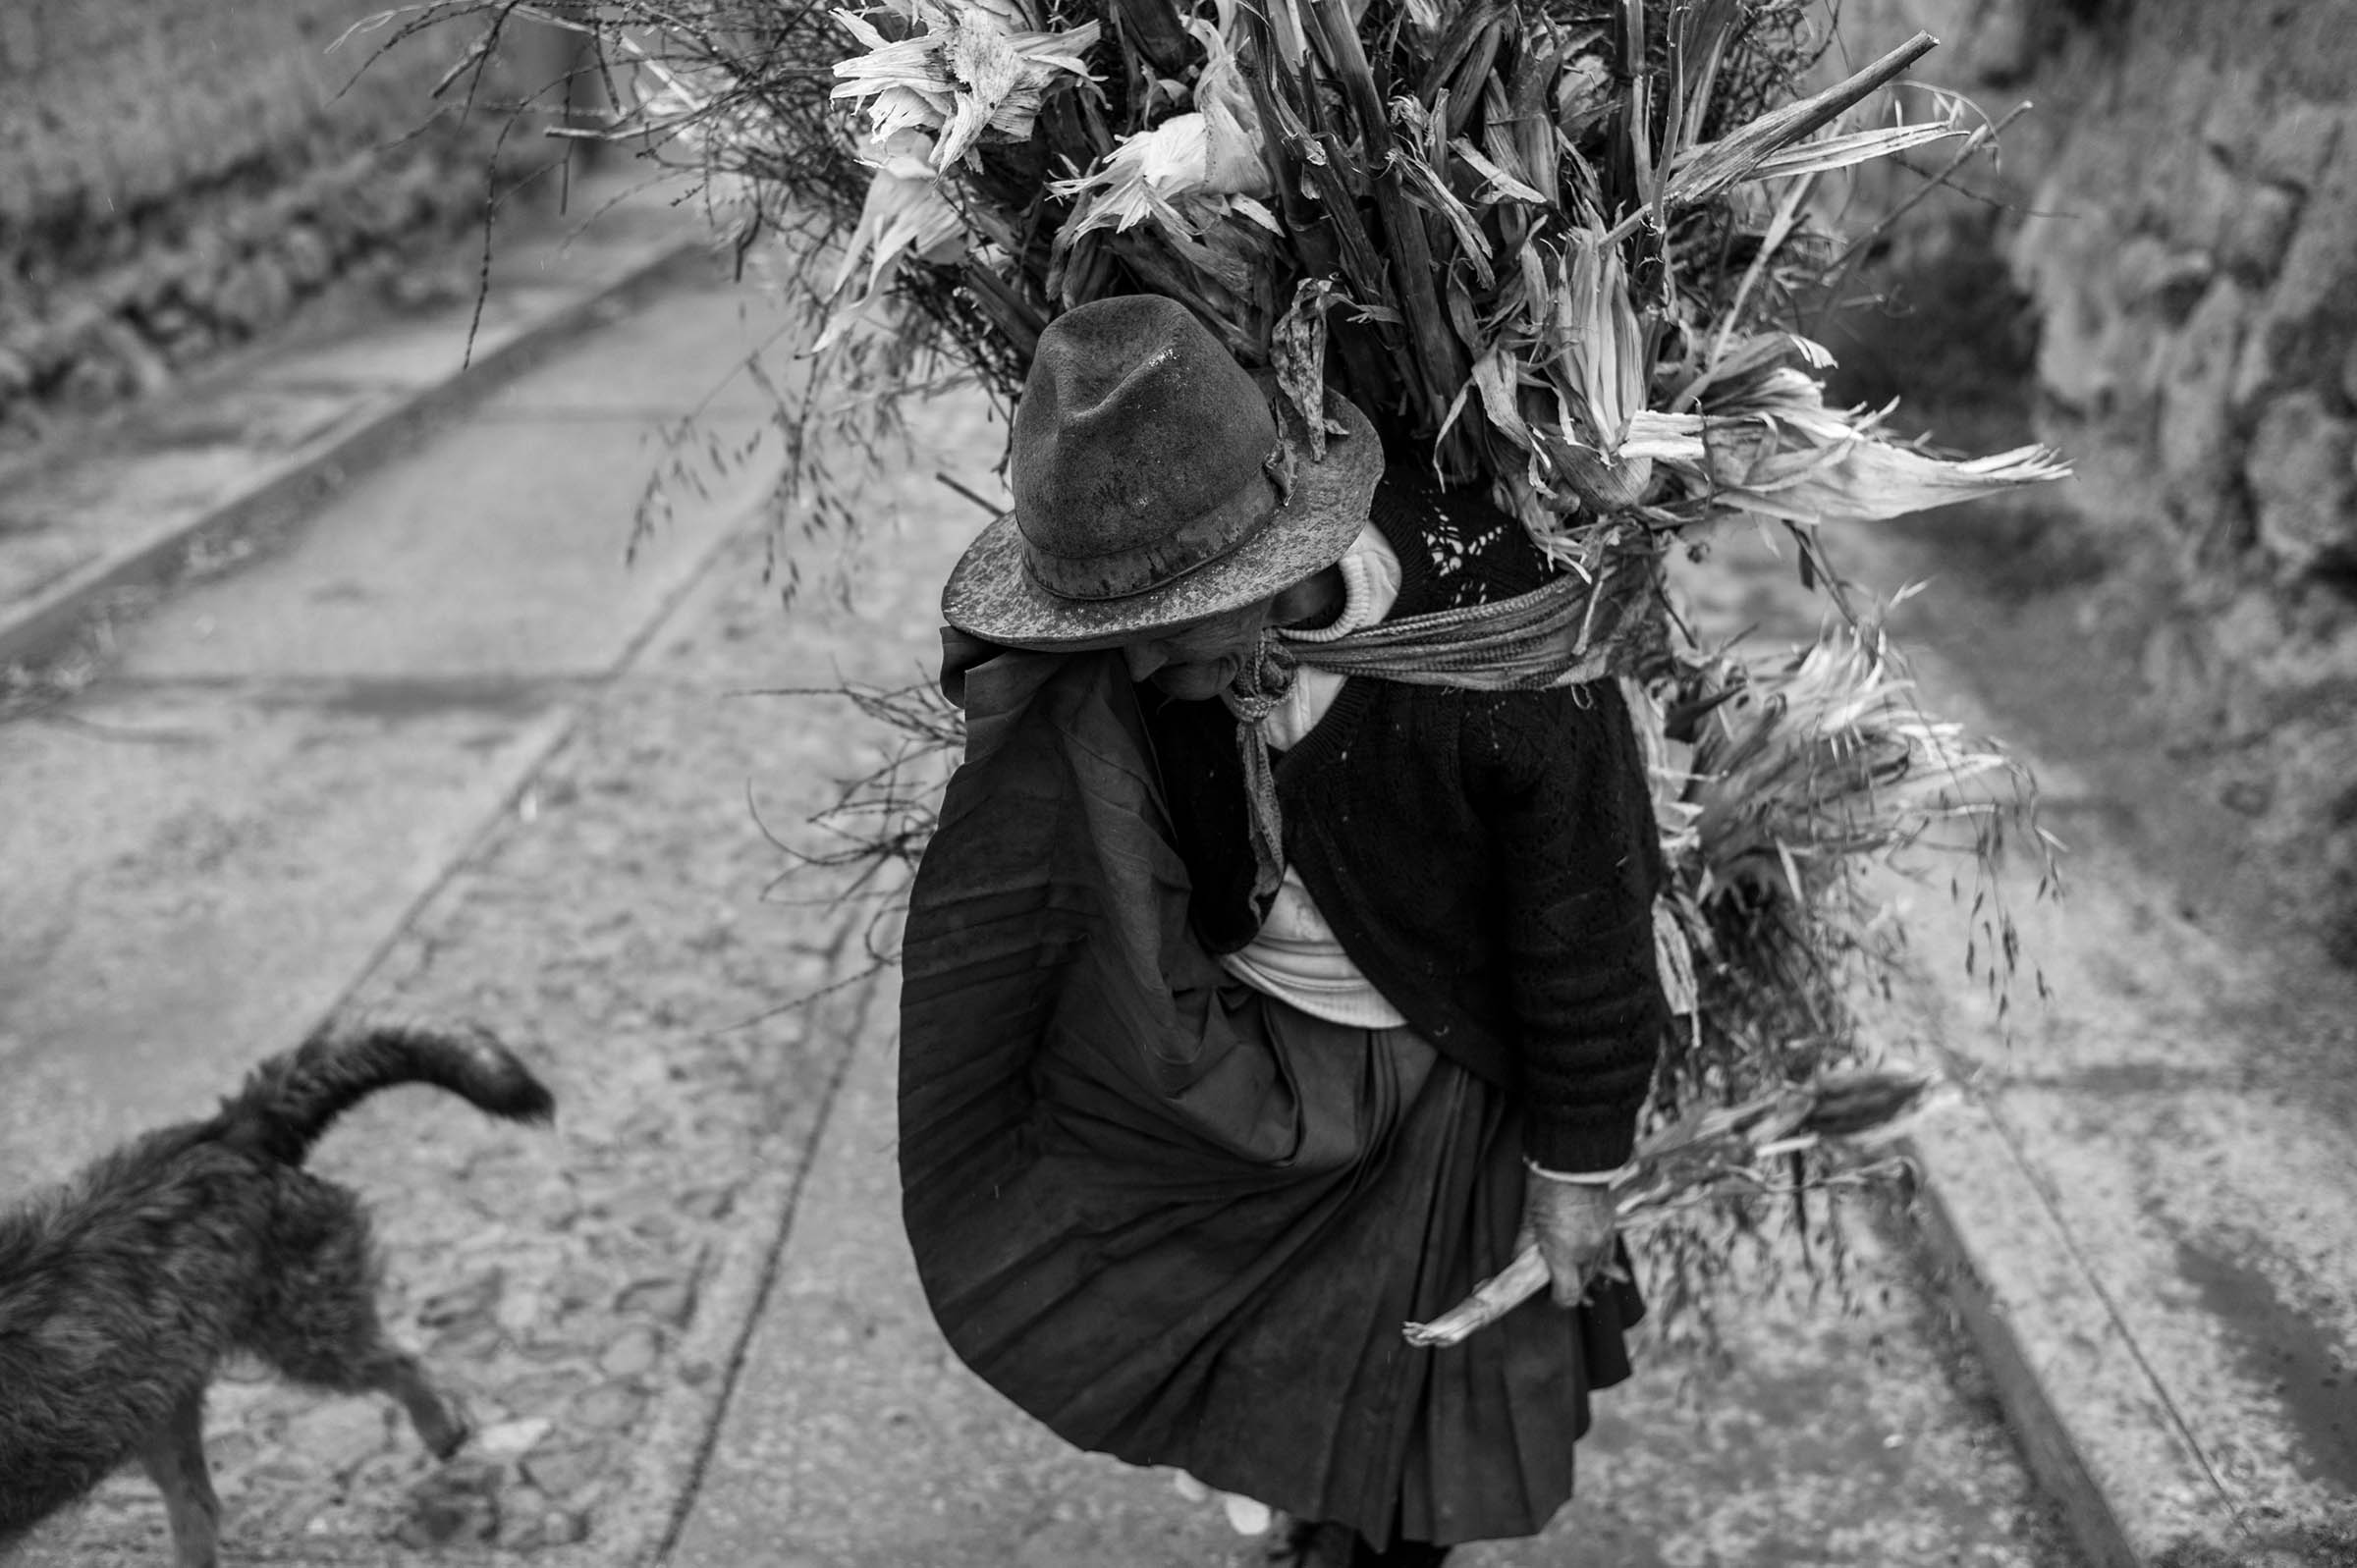 A woman carries maize just harvested from the Sacred Valley near Moray, Peru. (Alessandro Cinque/GroundTruth)